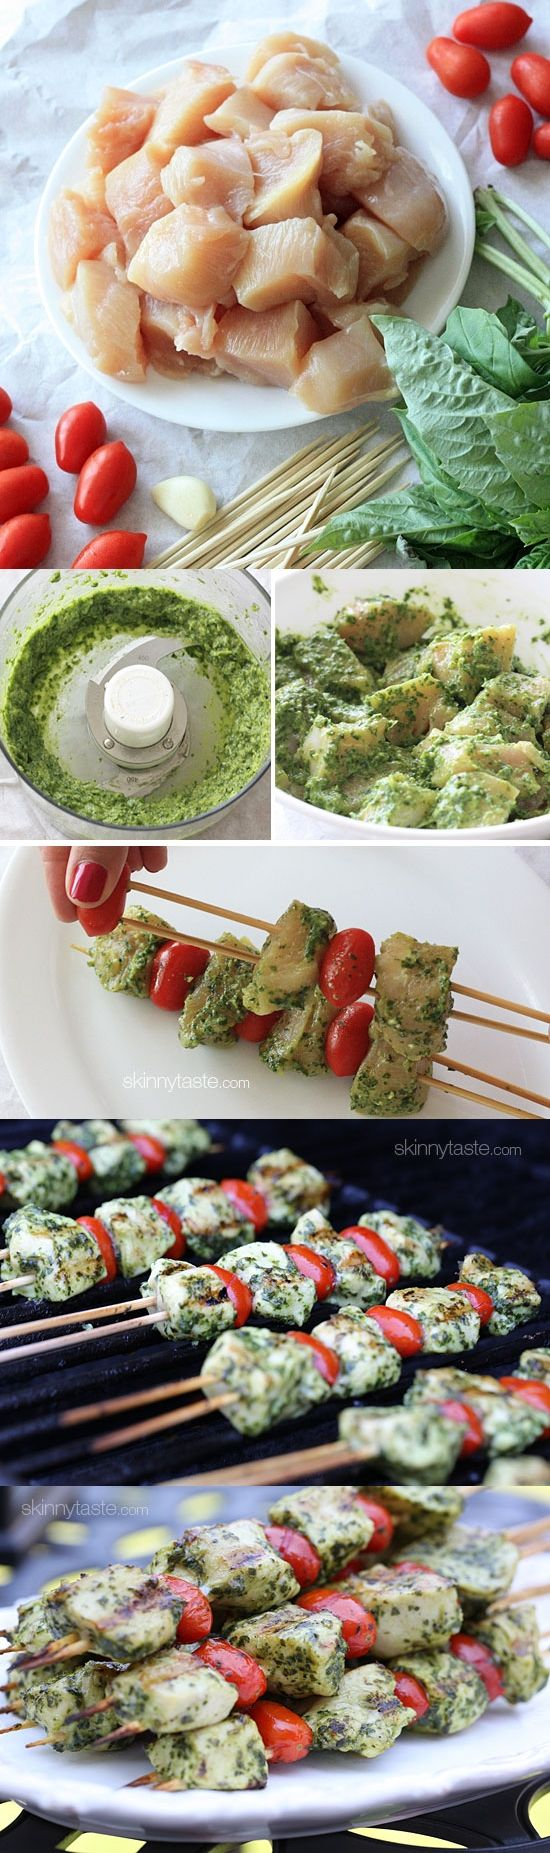 Grilled Pesto Chicken and Tomato Kebabs. Could work for an appetizer as well. + add mozzarella cheese bits